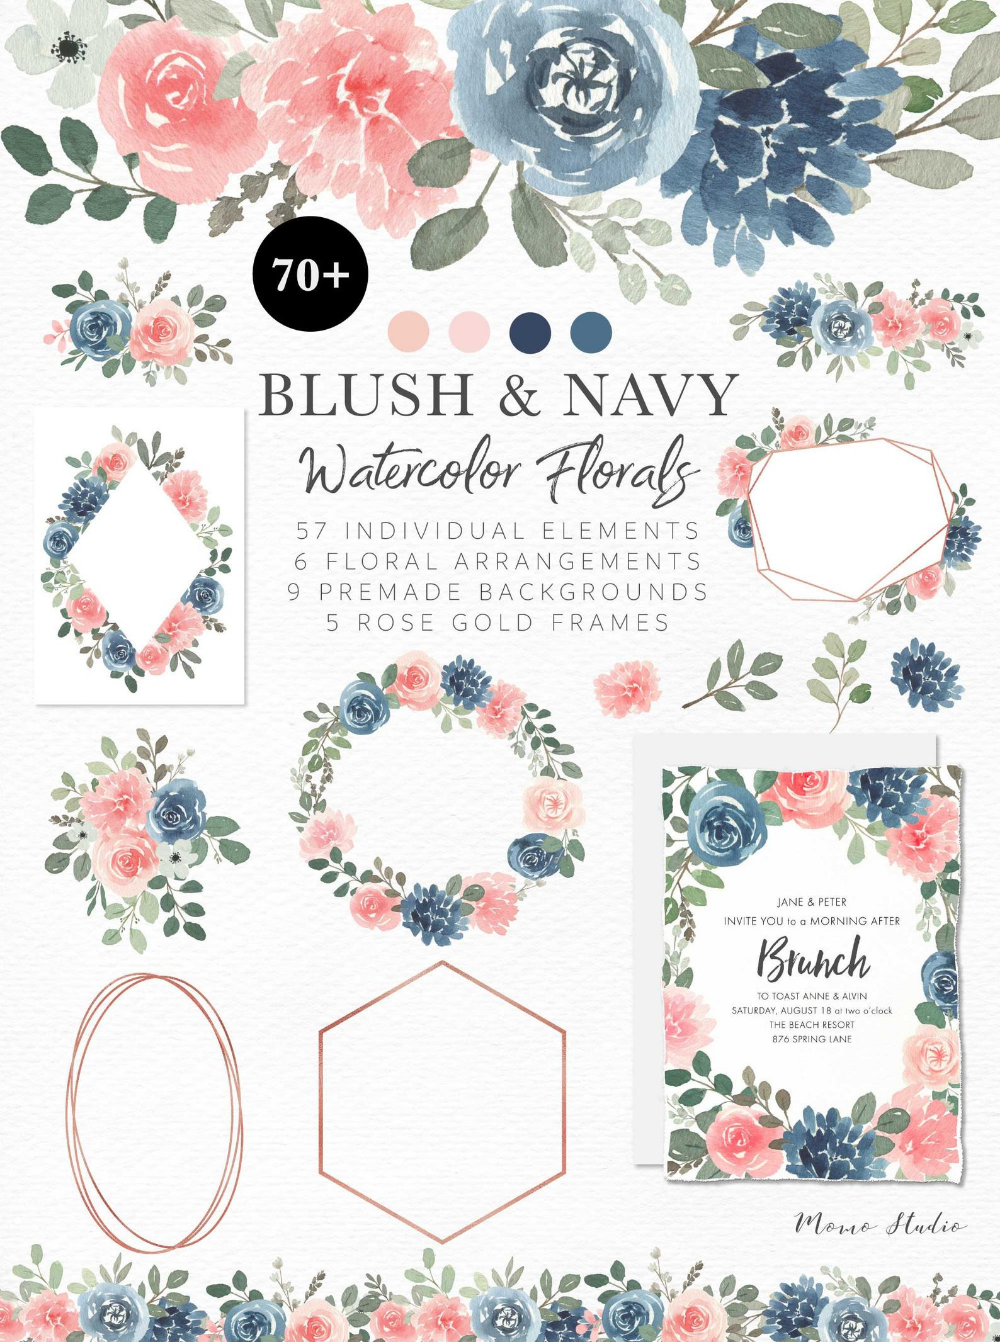 Floral Clipart: pink flowers and blue greenery Graphics PNG Premade Watercolor arrangements Digital Download Commercial Use